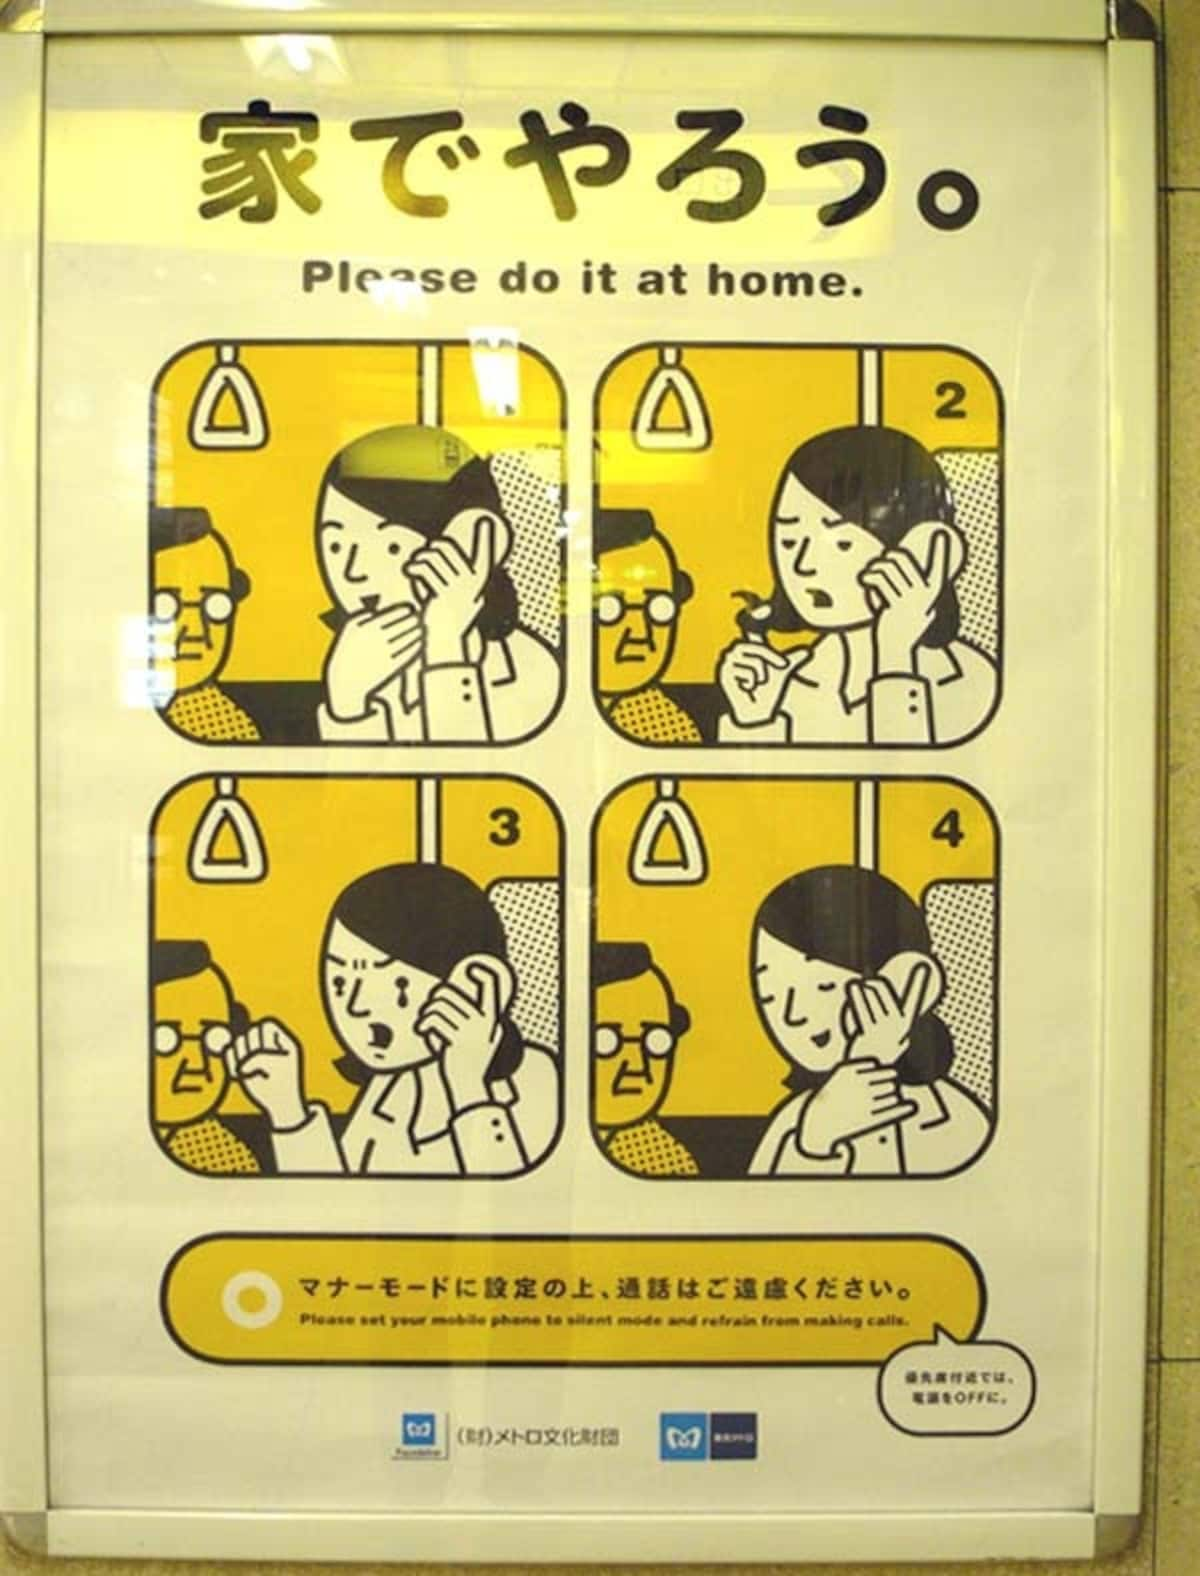 1. 'Japanese people have excellent phone manners on the train or elsewhere in public'